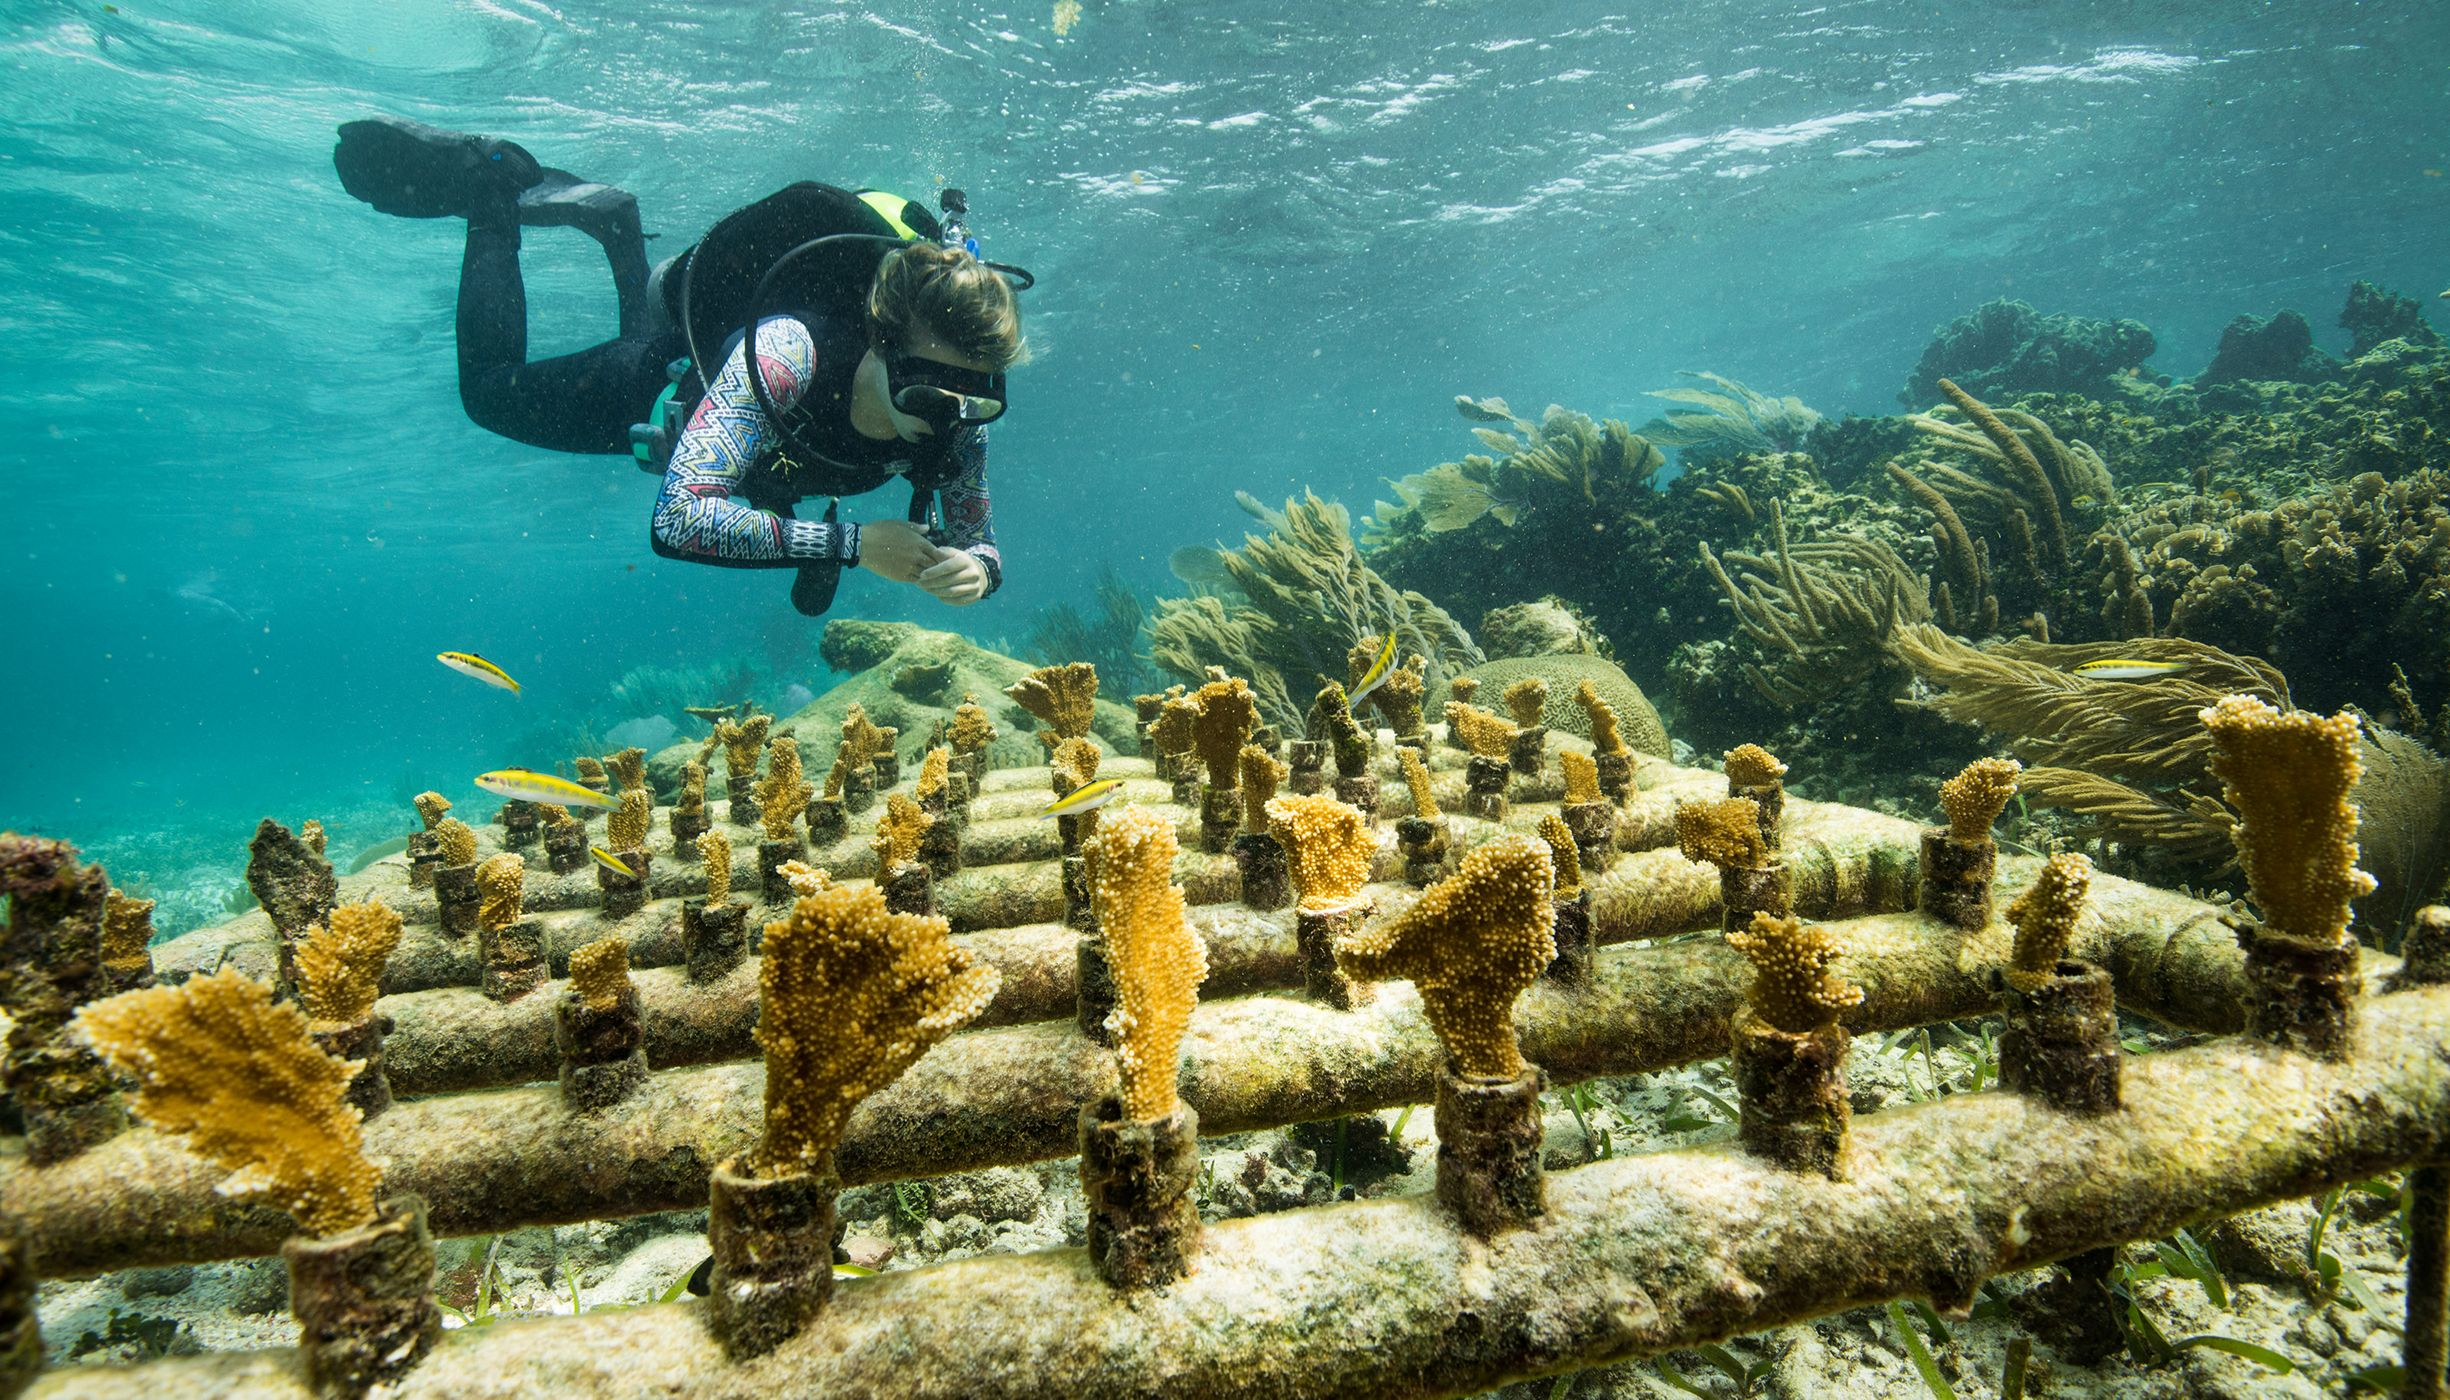 A diver swims near coral growing along a PVC pipe structure